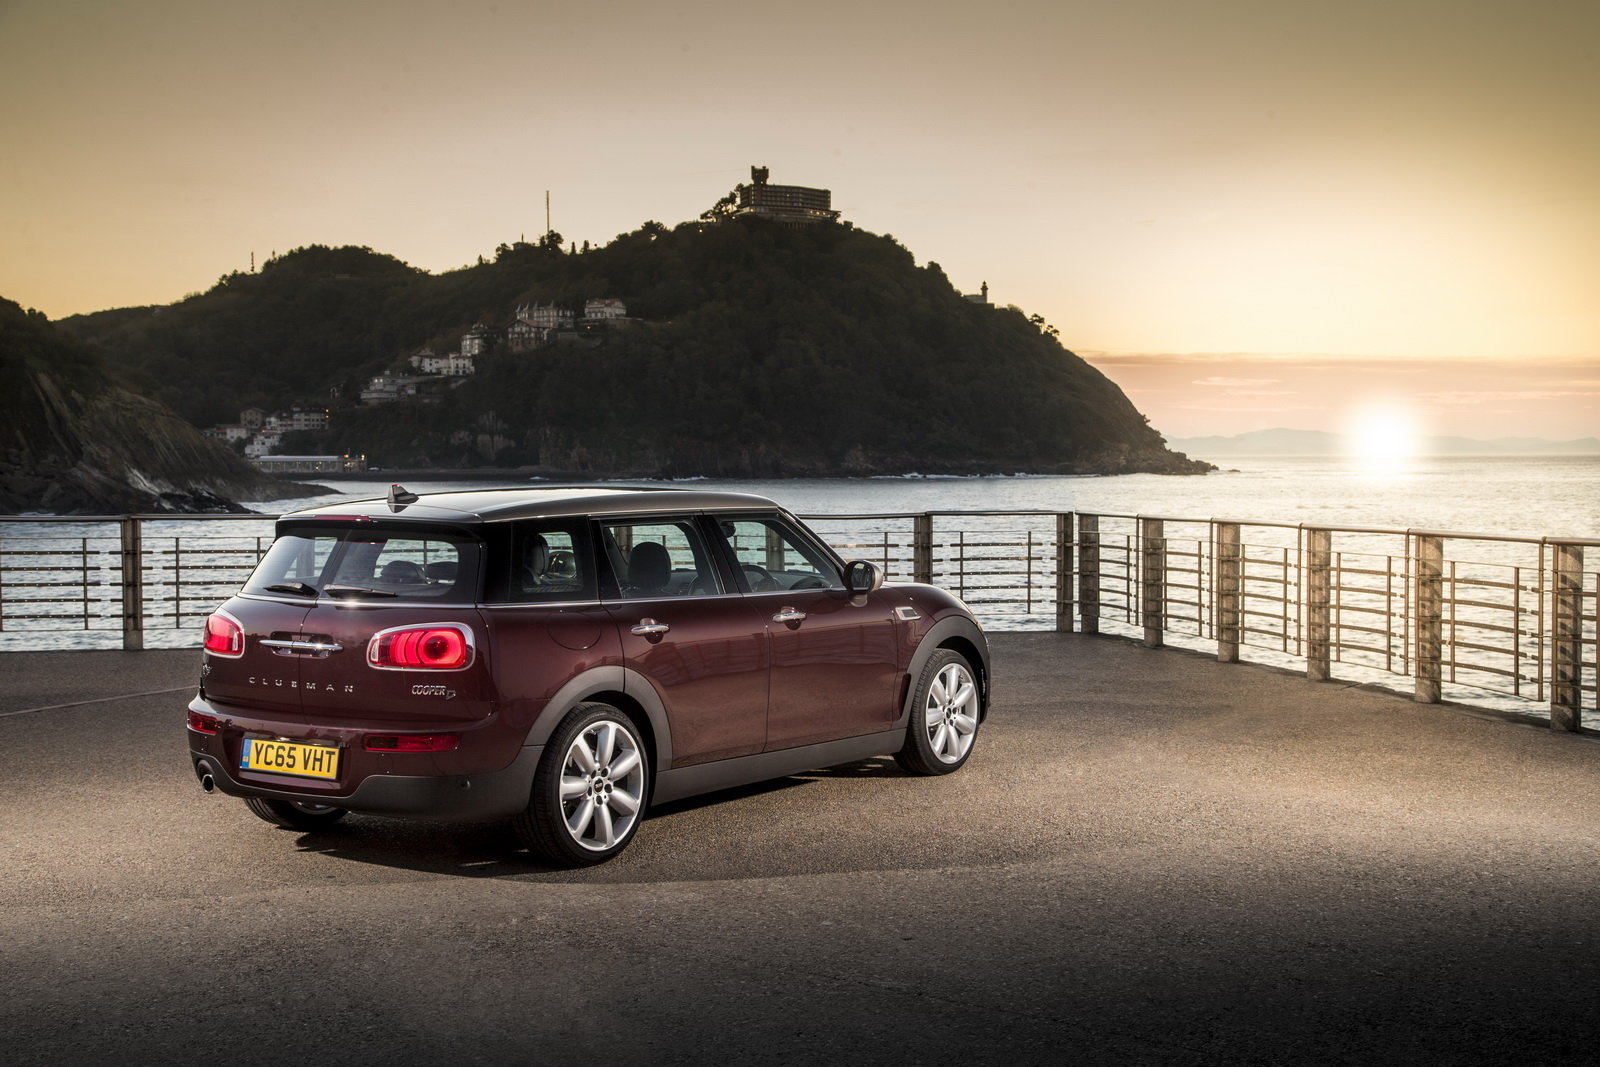 new mini clubman arrives in the uk priced from 19 995. Black Bedroom Furniture Sets. Home Design Ideas